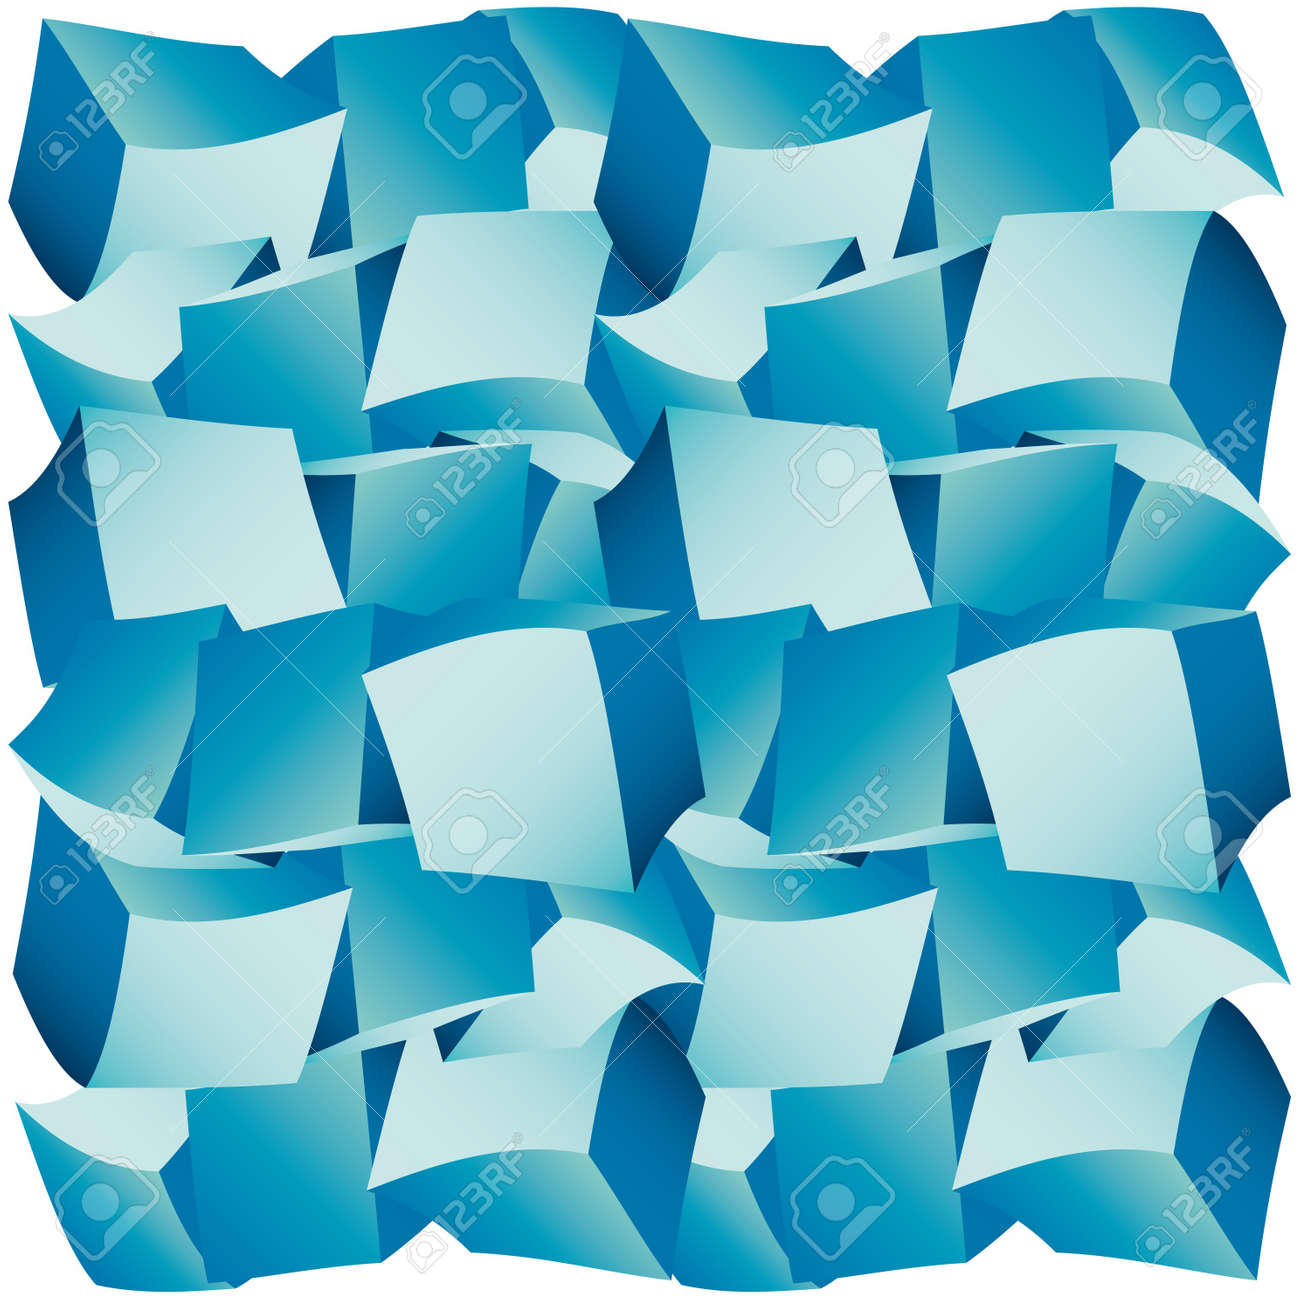 3d composition of cubes illustration Stock Vector - 7238000